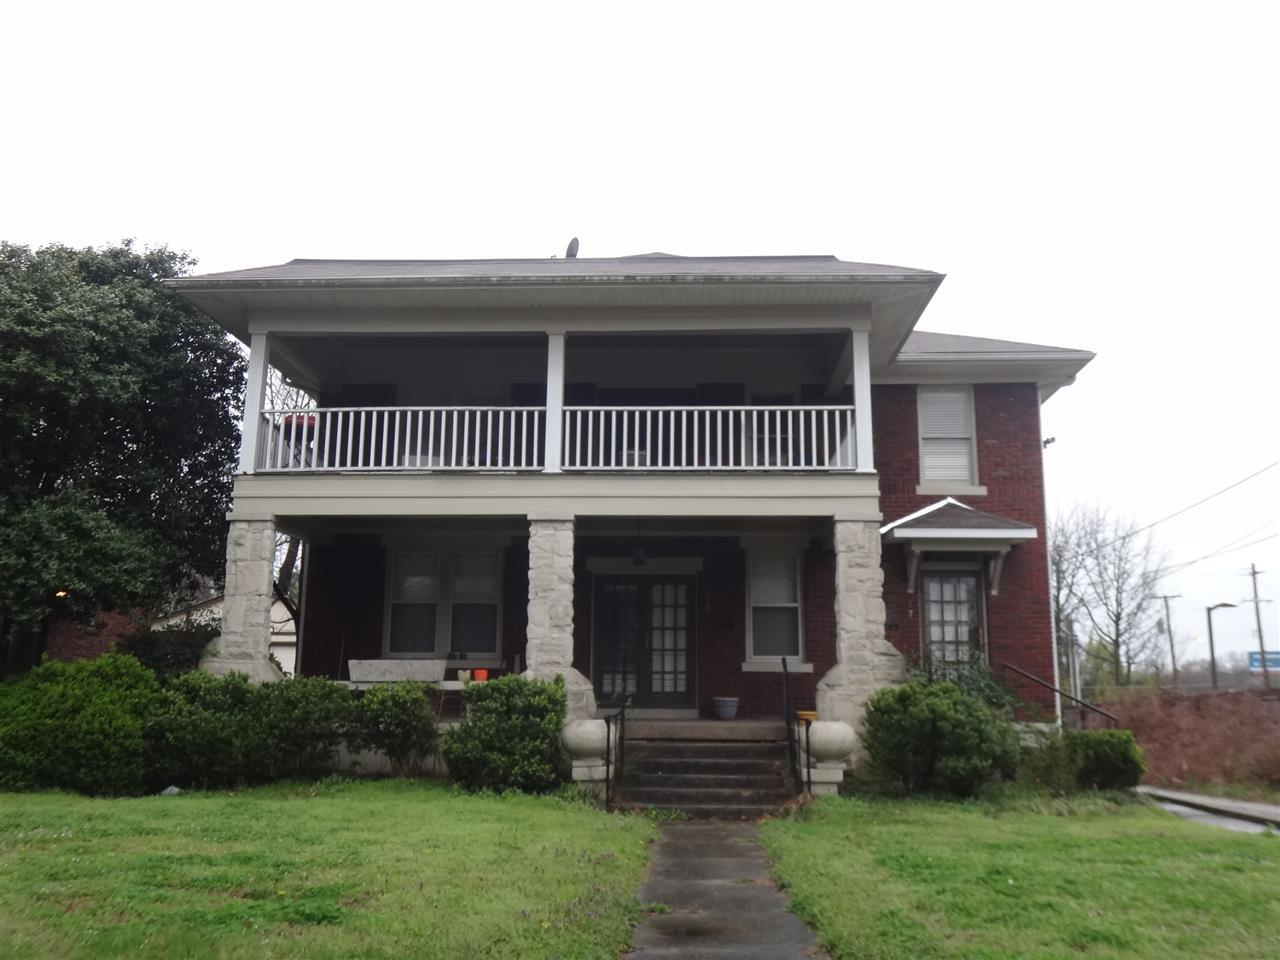 177 s belvedere blvd memphis tn 38104 10022756 jasco rh jascorealtors com  homes for sale in memphis tn with a pool